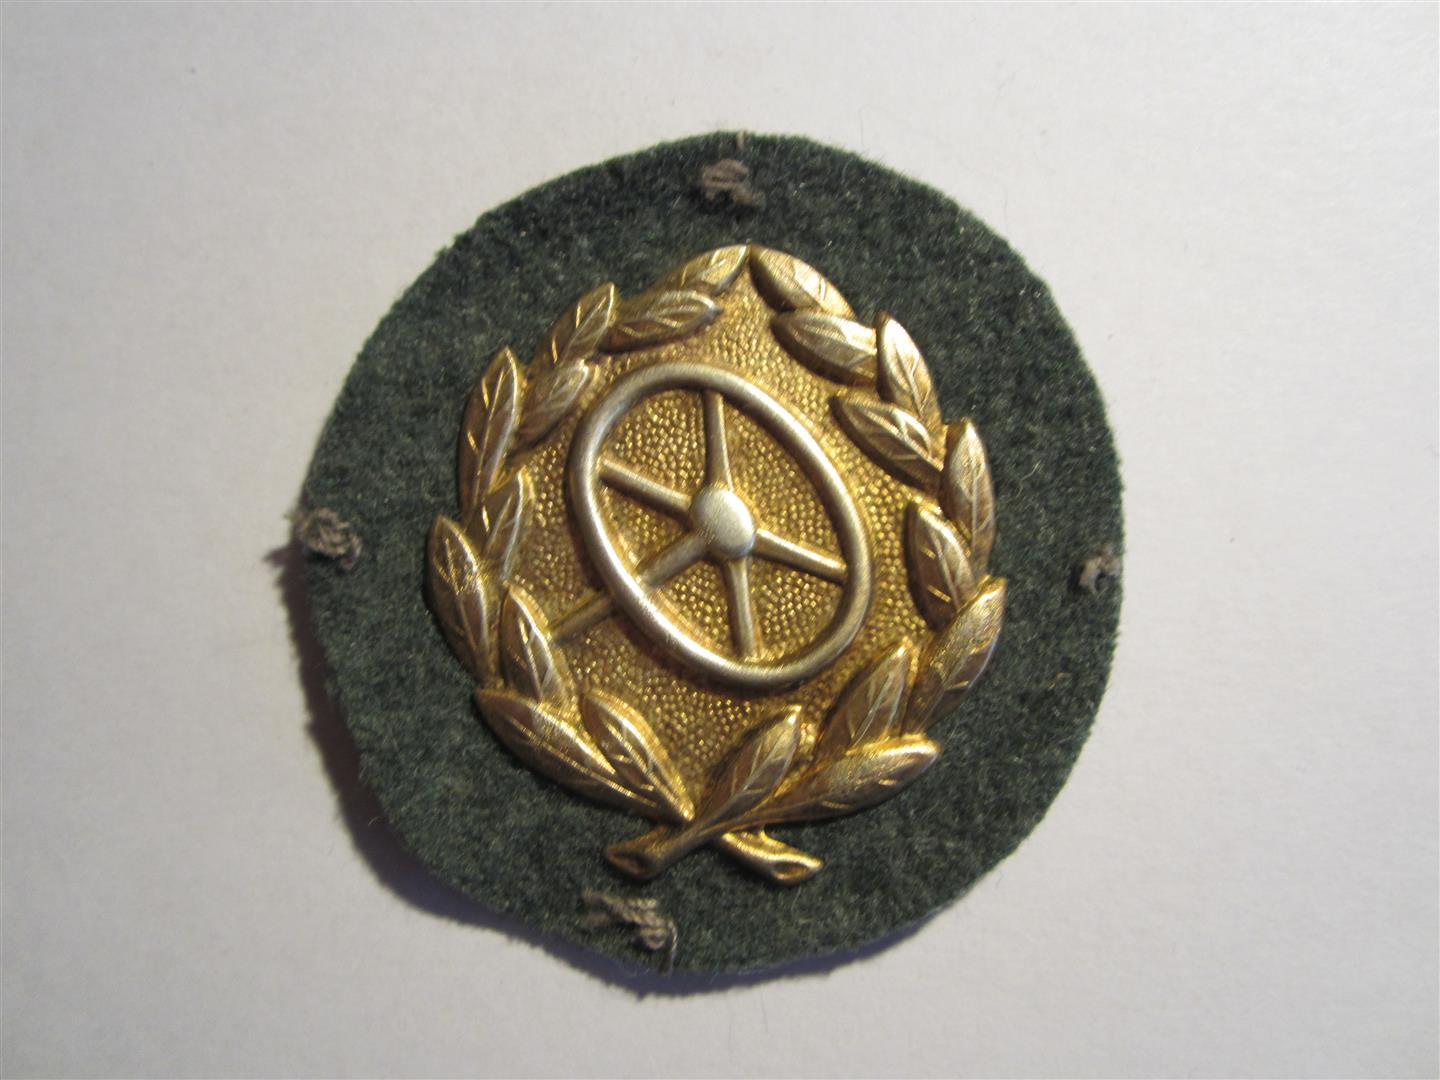 WW2 German Driver's qualification Badges